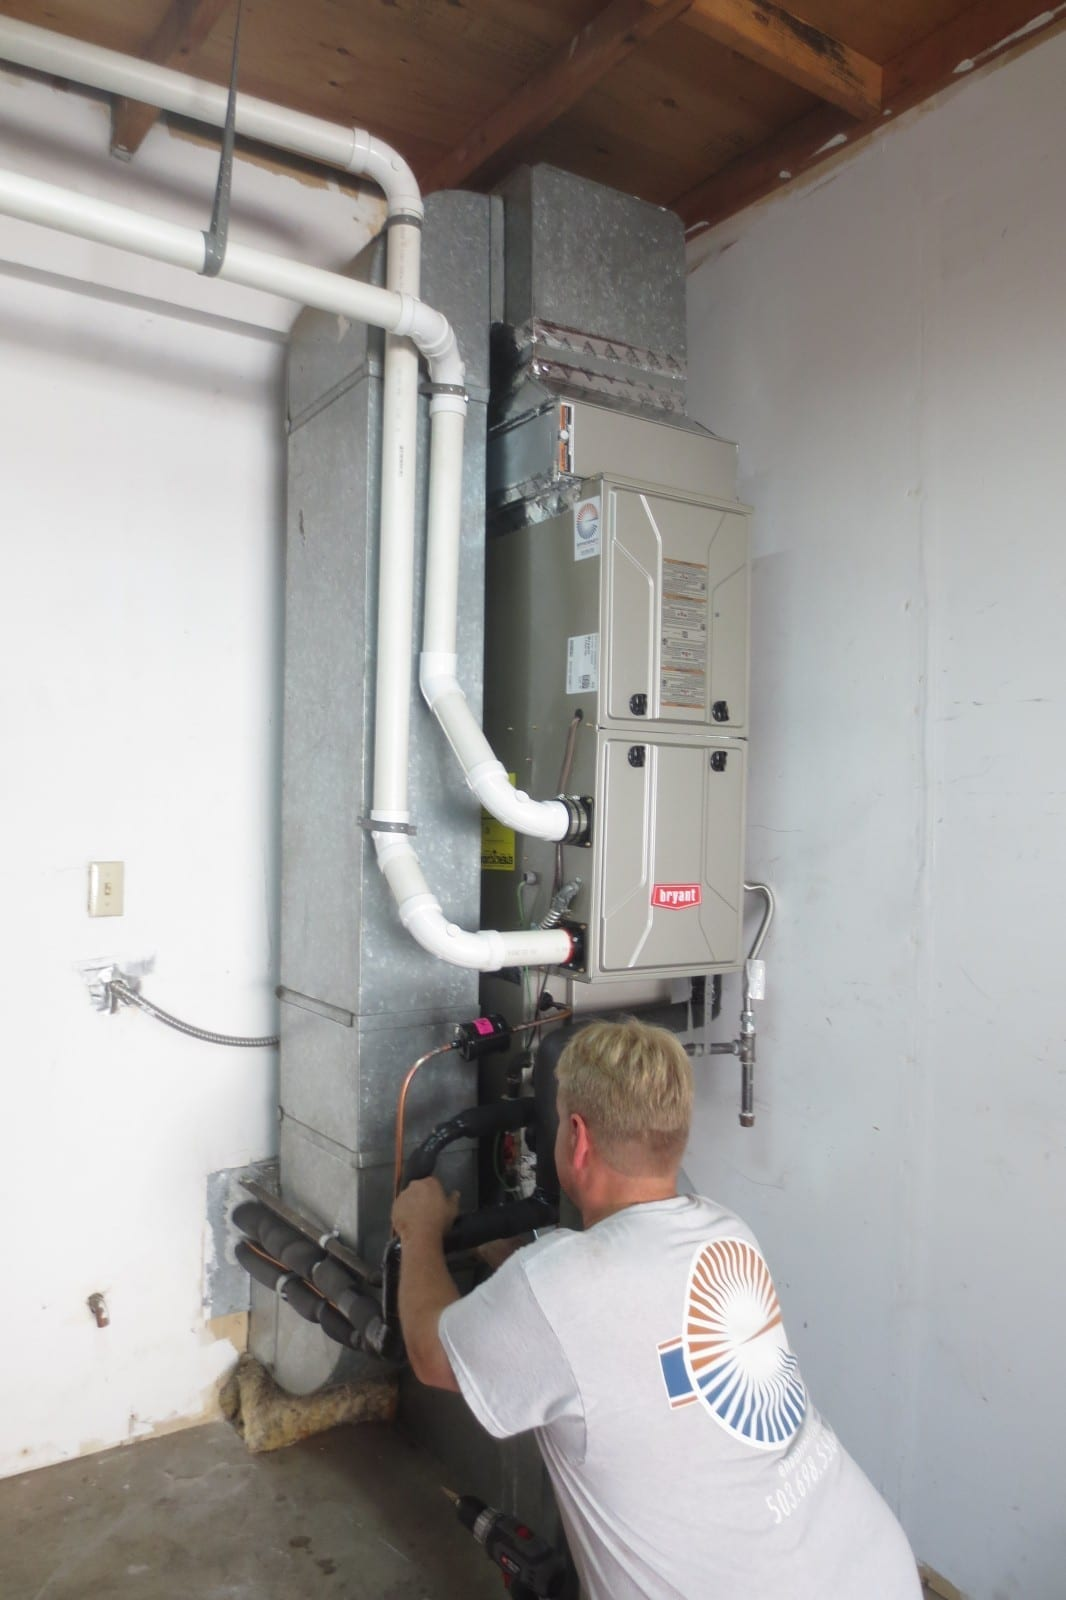 #63493A Job Photos Efficiency Heating & Cooling Best 3143 Gas Air Handler photos with 1066x1600 px on helpvideos.info - Air Conditioners, Air Coolers and more